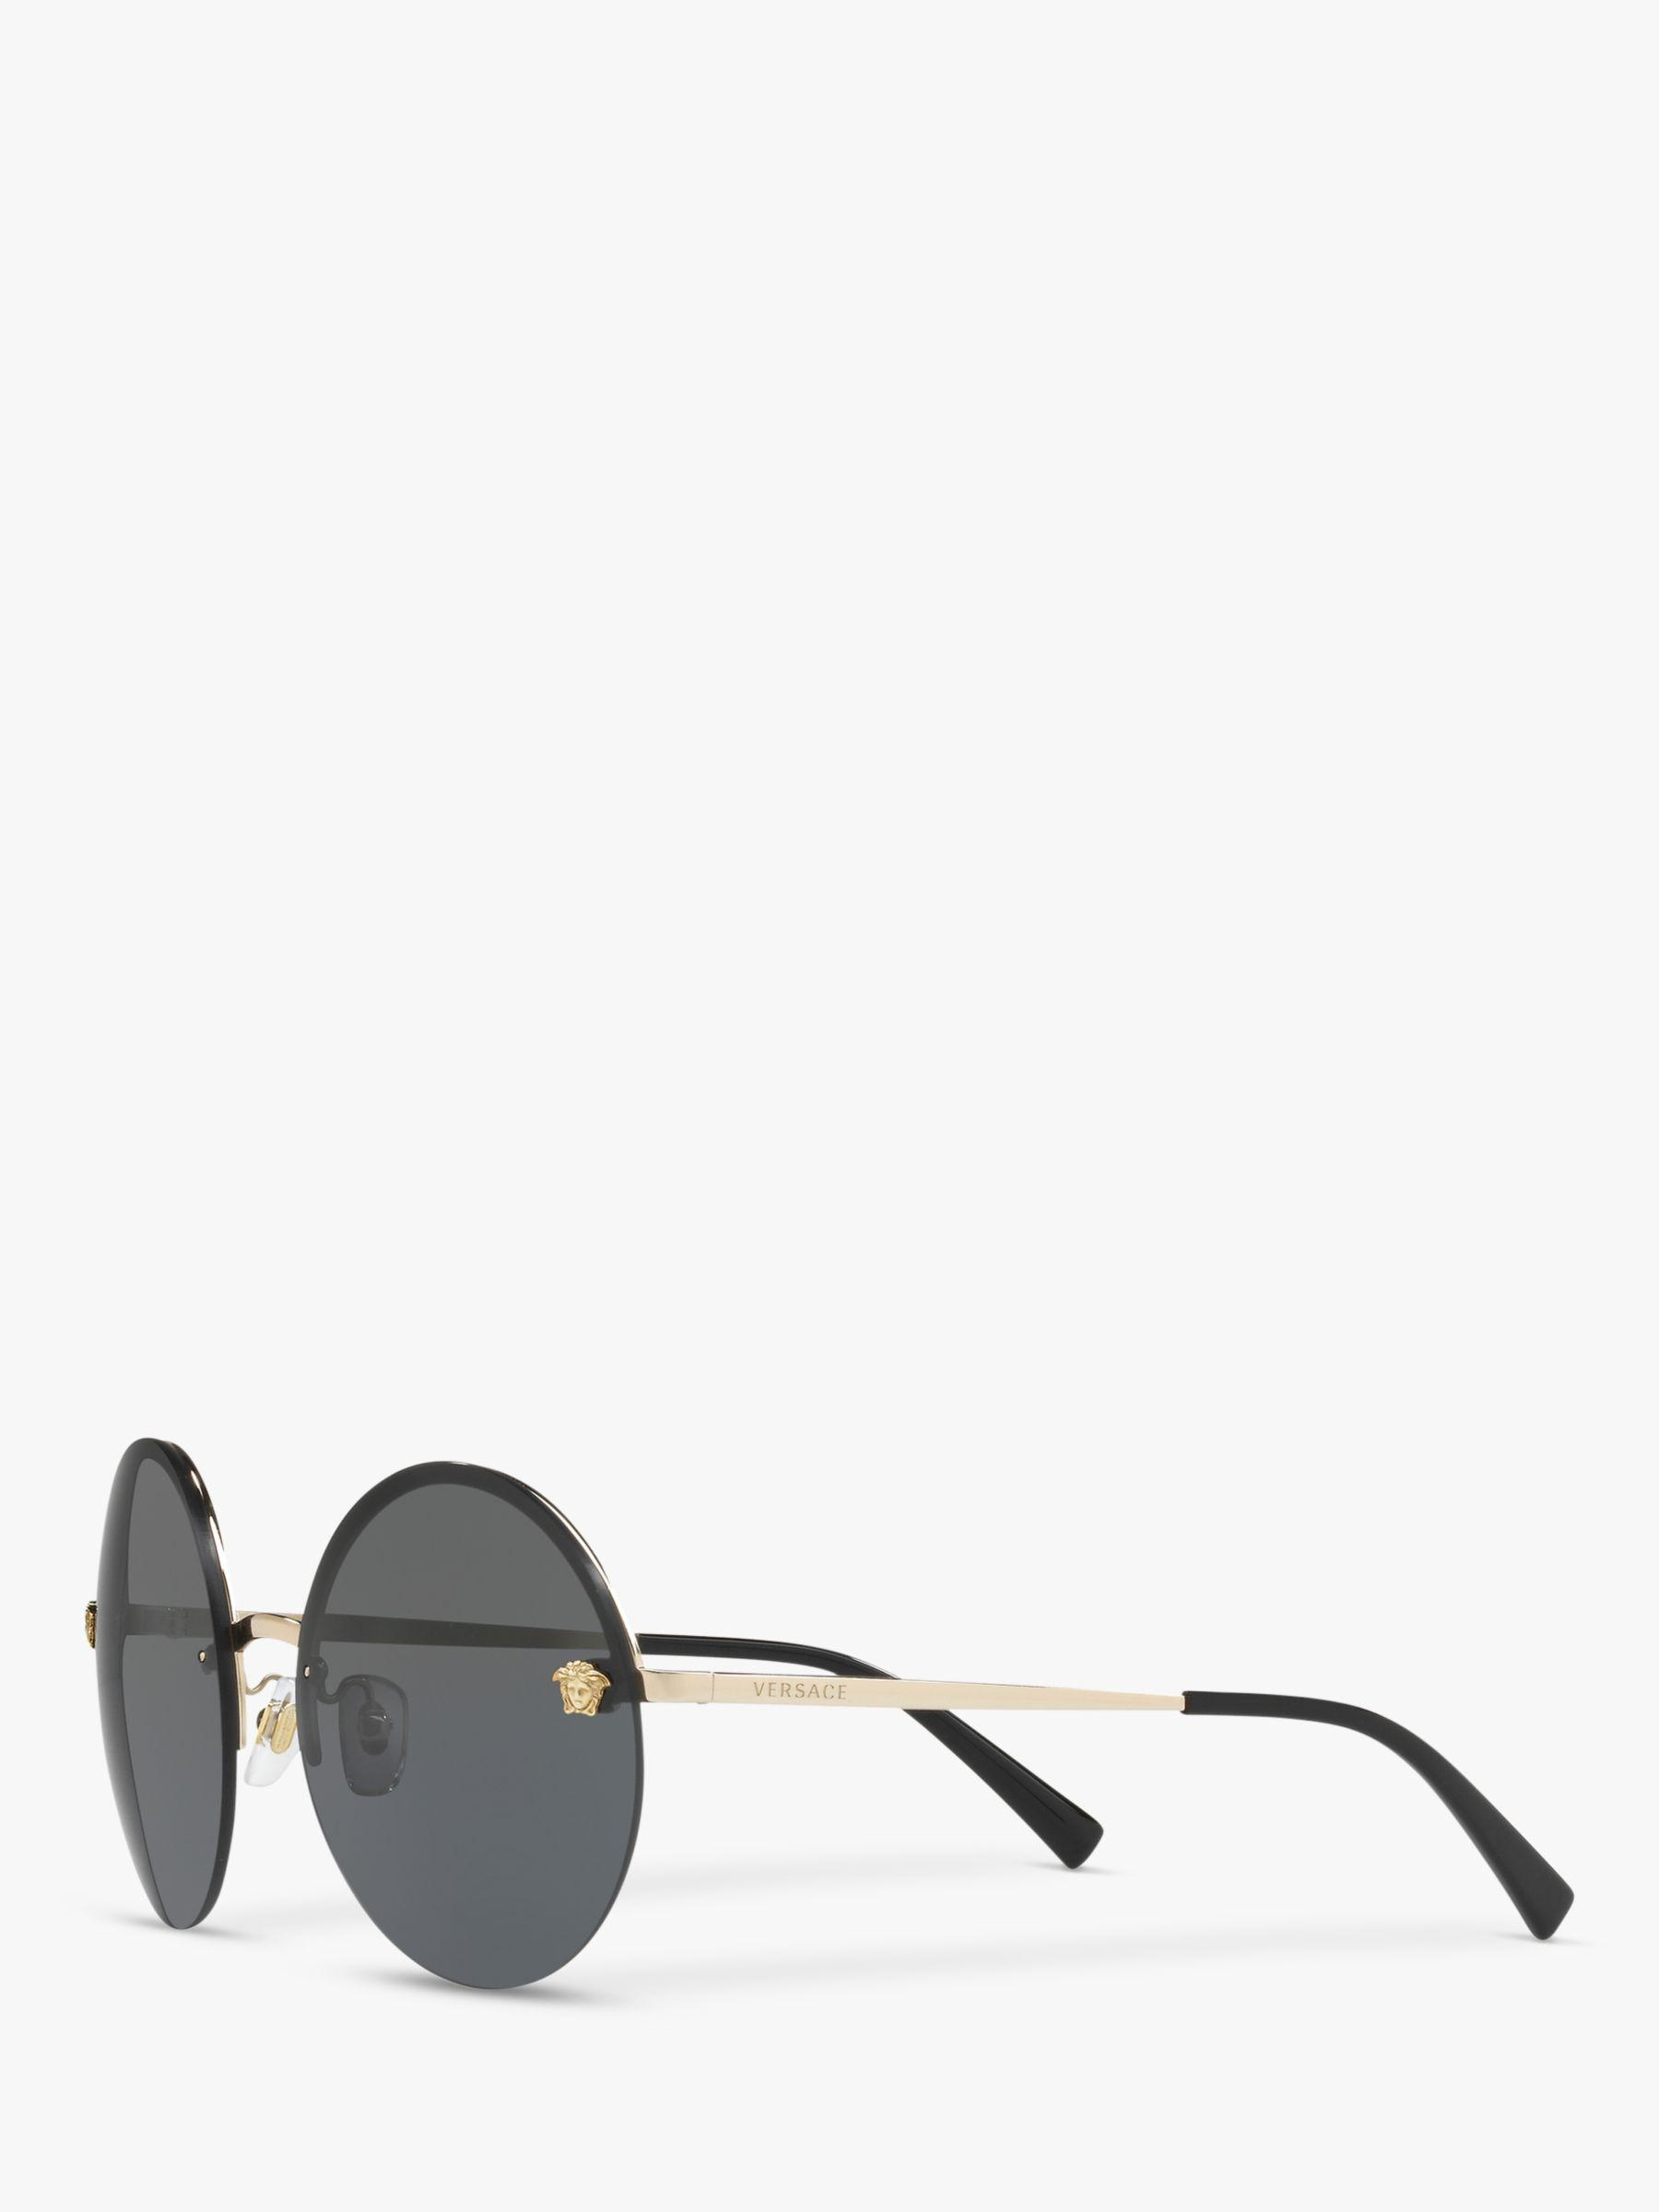 c55ef55004cc Versace Pale Gold Ve2176 Round Sunglasses in Yellow - Lyst